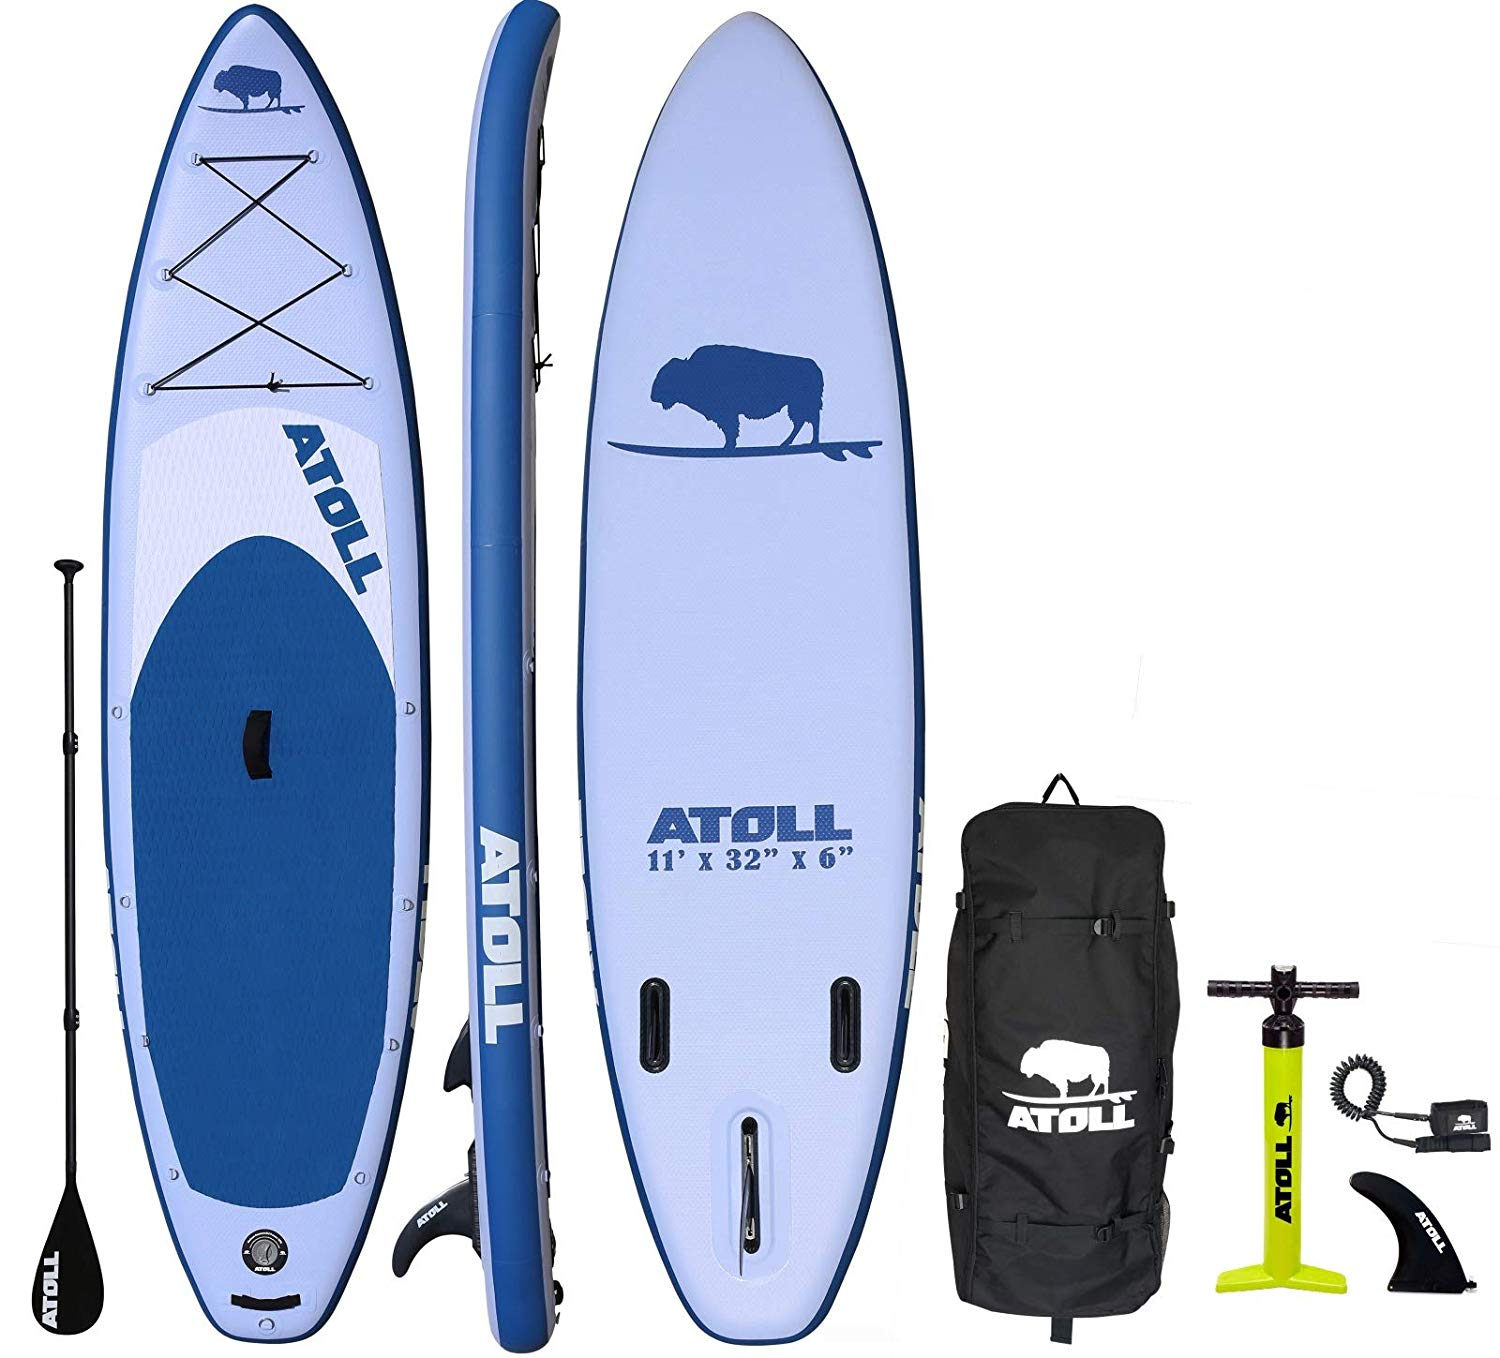 Atoll 11'Inflattable Paddle Board